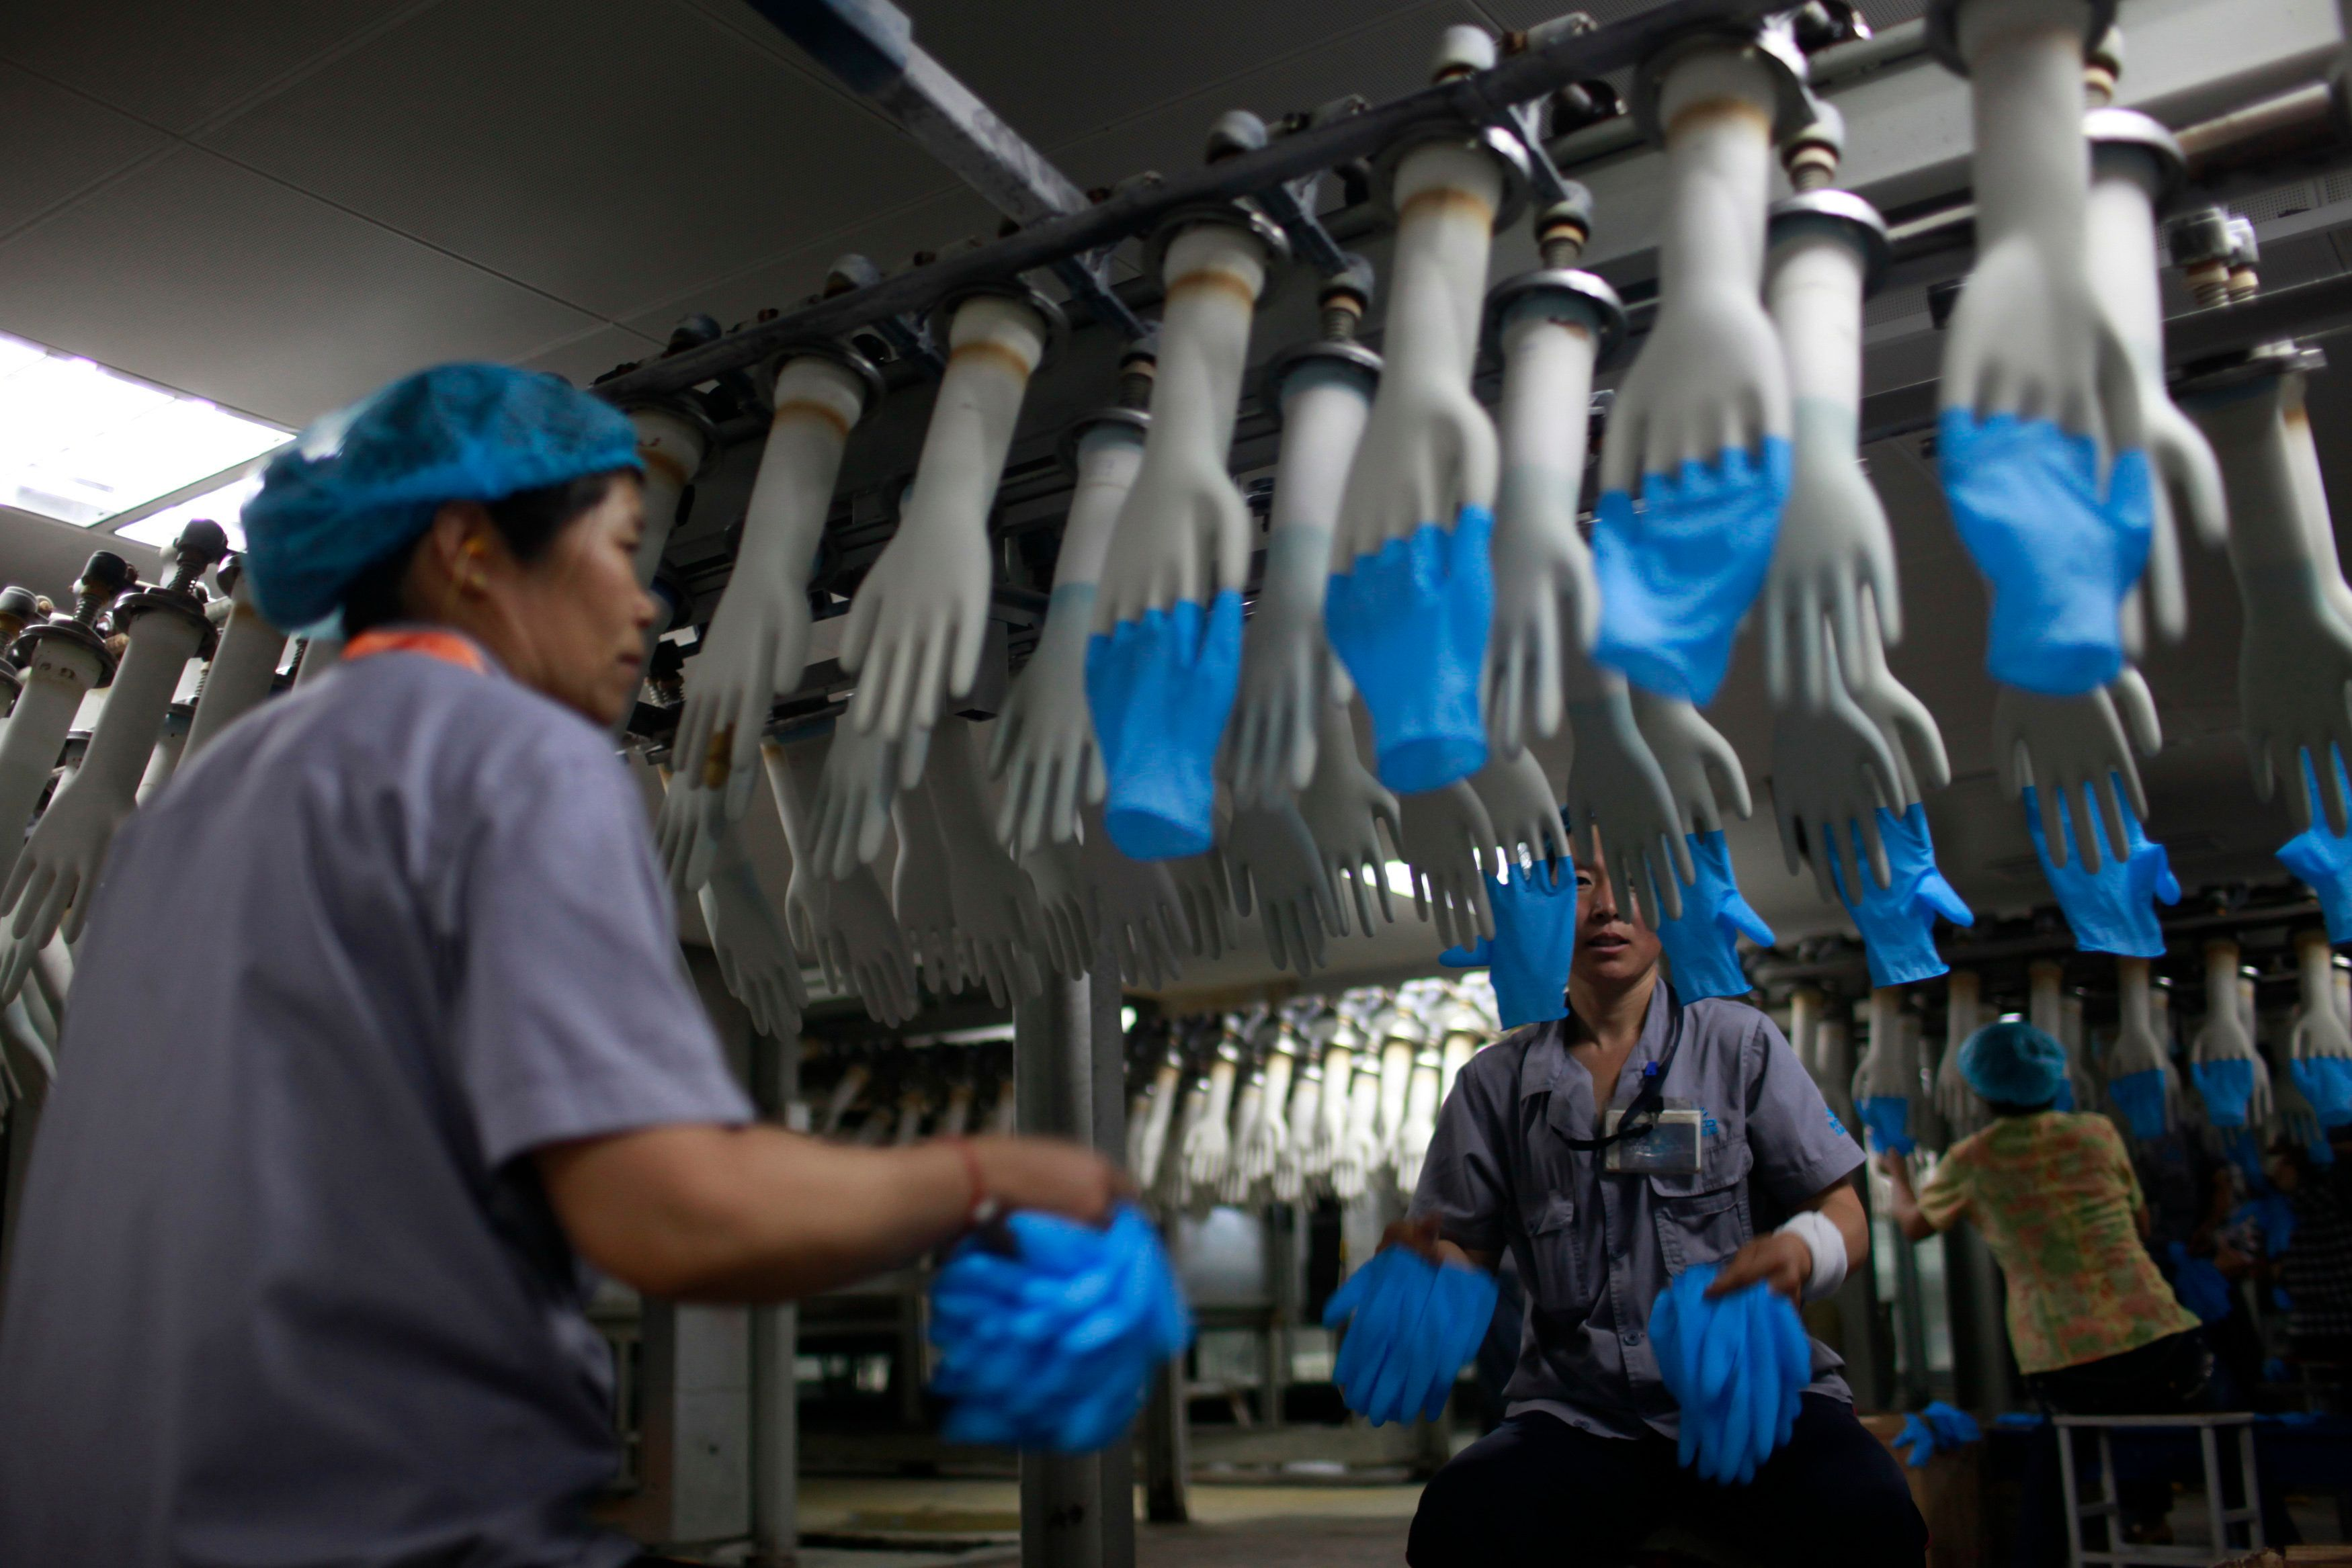 Workers operate on a rubber glove assembly line at a factory in Zibo, Shandong Province May 28, 2012. China's industrial sector increasingly runs by machine, which might seem like the perfect answer to China's fast-rising labour costs - they don't ask for a raise, get injured or go on strike. According to Nomura, 28 percent of factory machines in China use numerical controls - one measure of automation. That may be far lower than Japan's 83 percent, but China is growing far faster than Japan did at a comparable stage of development, says Ge Wenjie, a machinery analyst with Nomura. Picture taken on May 28, 2012. To match Analysis CHINA-ECONOMY/AUTOMATION           REUTERS/Aly Song (CHINA)